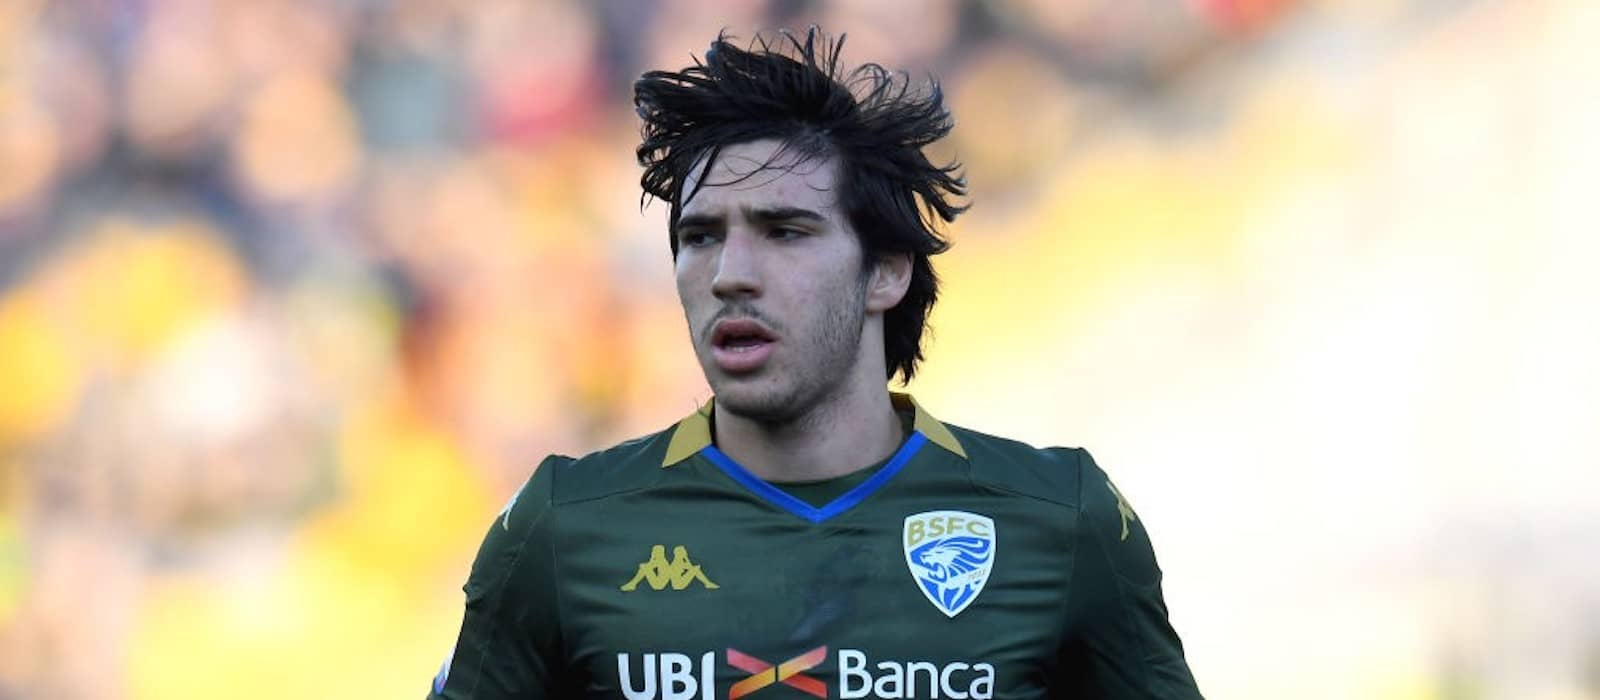 Sandro Tonali a step closer to Manchester United as Barcelona pull plug